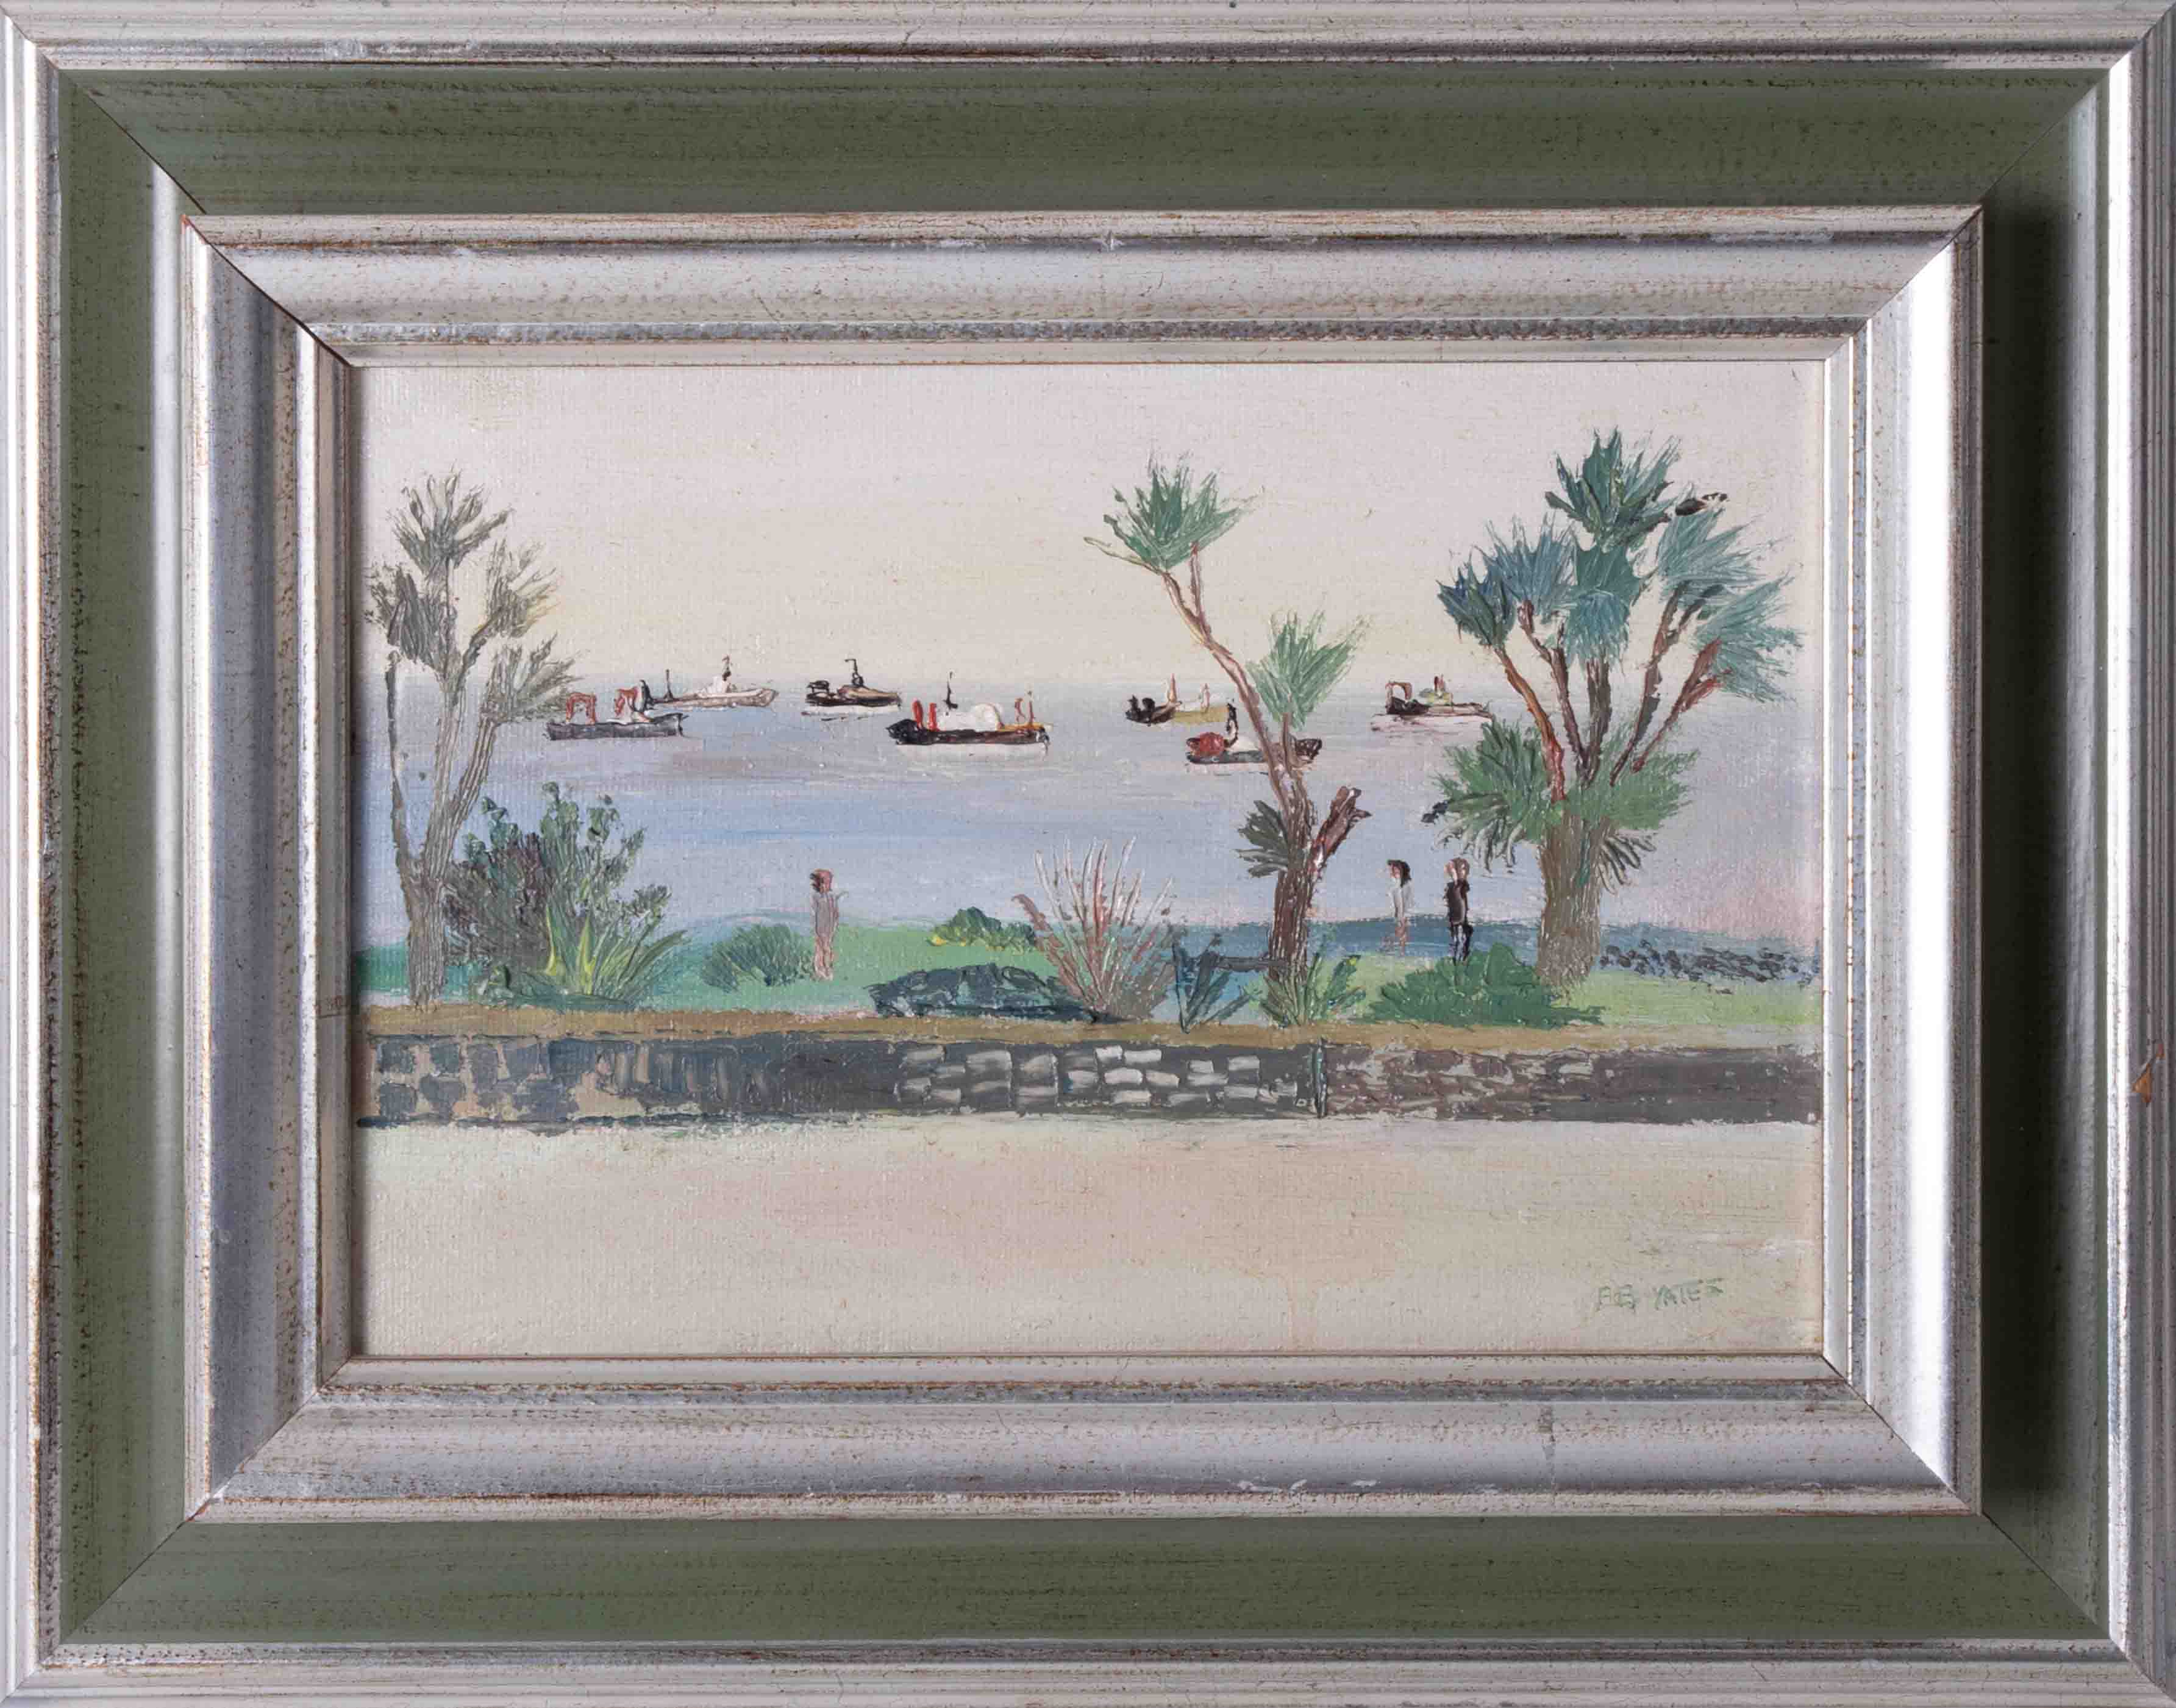 Fred Yates (1922-2008) 'Penzance' oil on canvas, 17cm x 25cm, signed, titled on reverse (No 14),